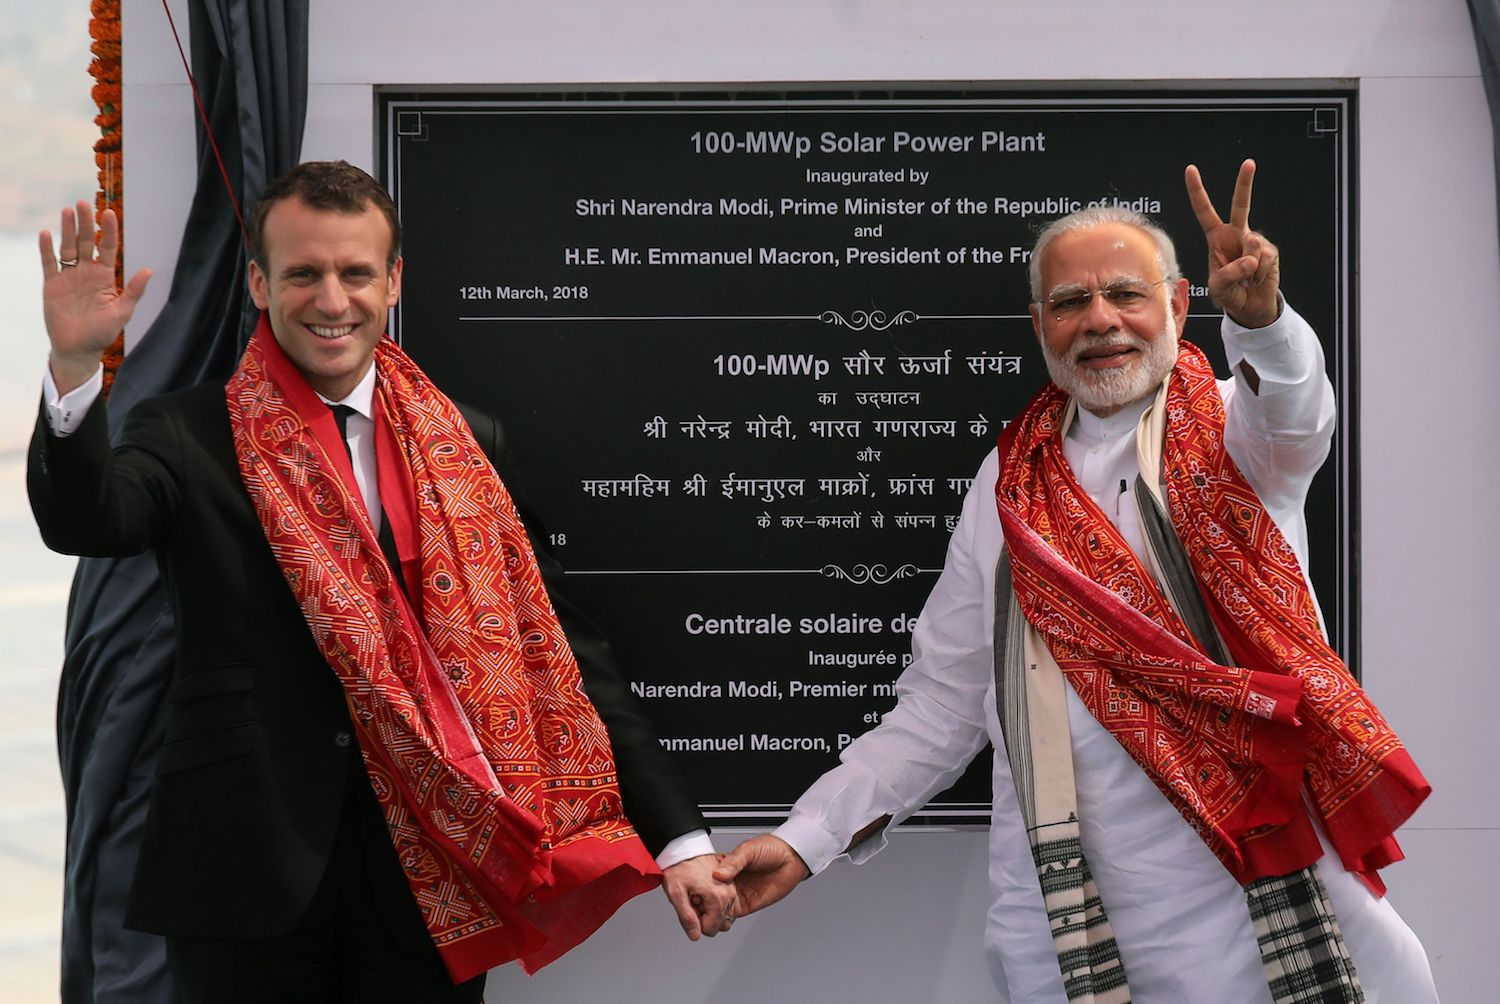 Indian Prime Minister Narendra Modi (r) and French President Emmanuel Macron pose for photographers at the opening of a solar power plant in Mirzapur on March 12. French President Emmanuel Macron March 11 pledged hundreds of millions of dollars for solar projects in developing countries, as world leaders met in India to promote greater investment in renewable energy.  / AFP PHOTO / POOL / Ludovic MARIN        (Photo credit should read LUDOVIC MARIN/AFP/Getty Images)